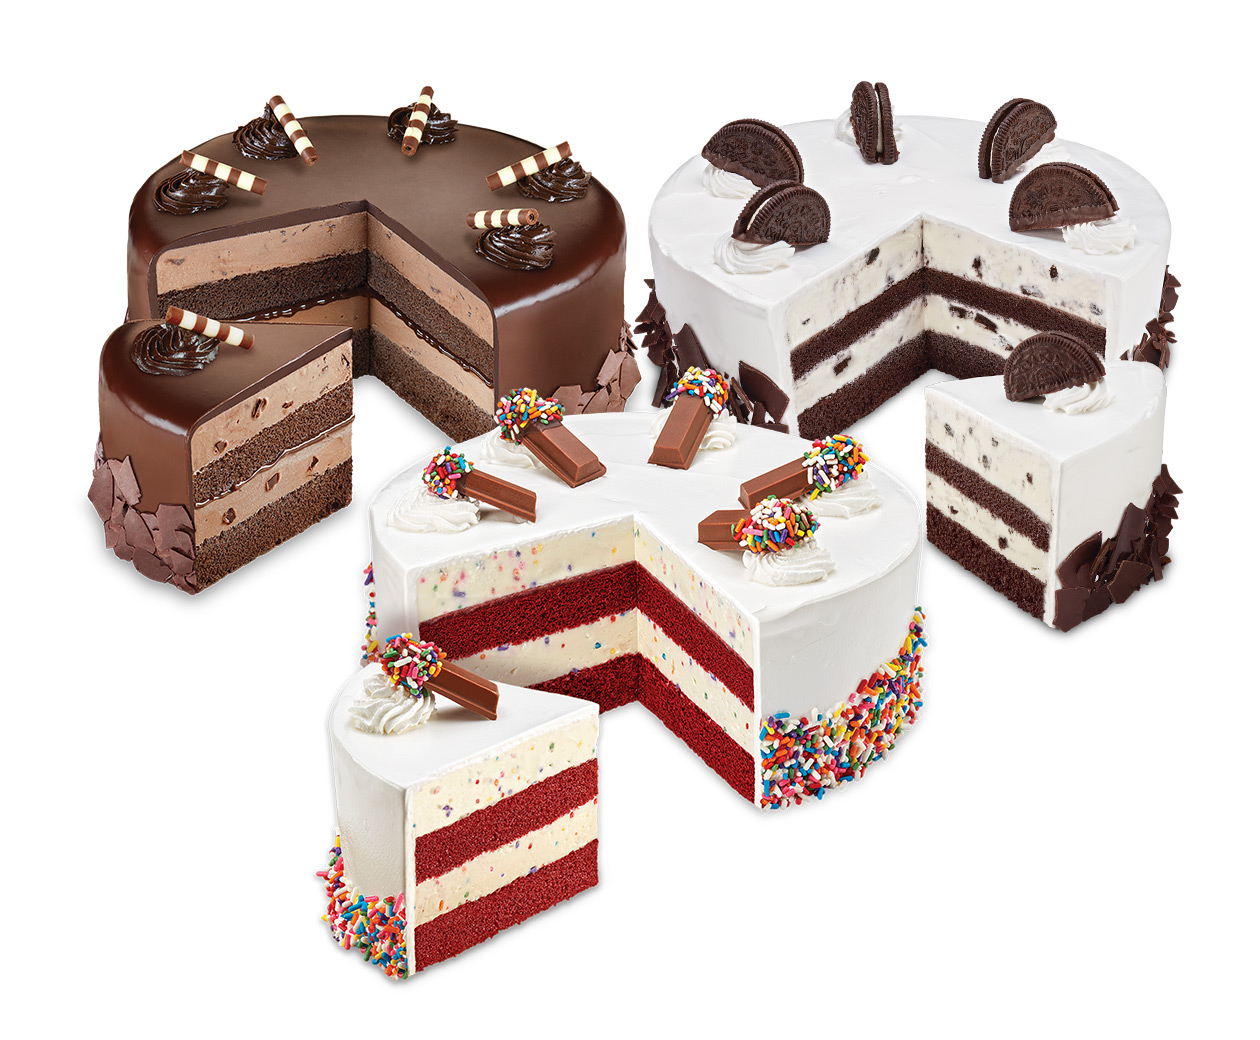 Astonishing Cakes Made With Your Favorite Ice Cream At Cold Stone Creamery Personalised Birthday Cards Rectzonderlifede